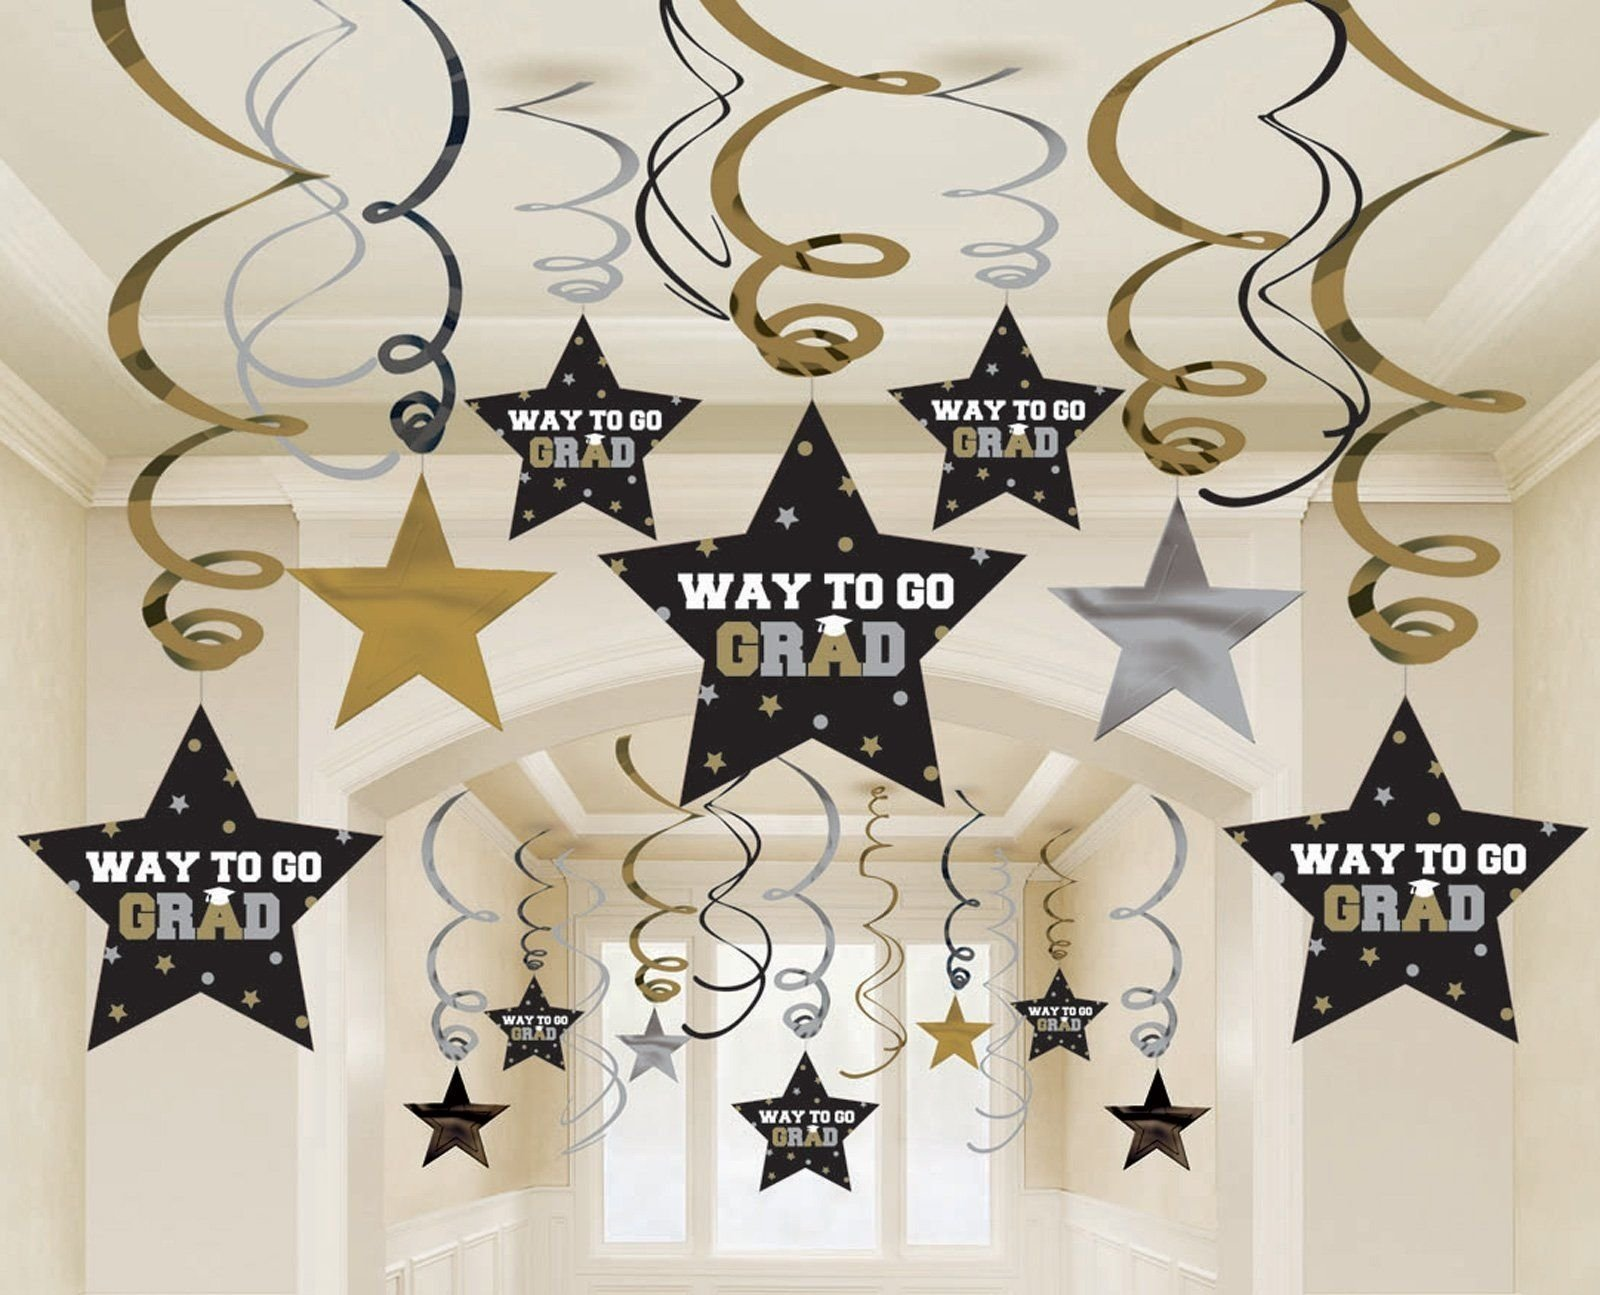 10 Fantastic Black And Gold Party Ideas male graduation decorations res image of graduation star swirl